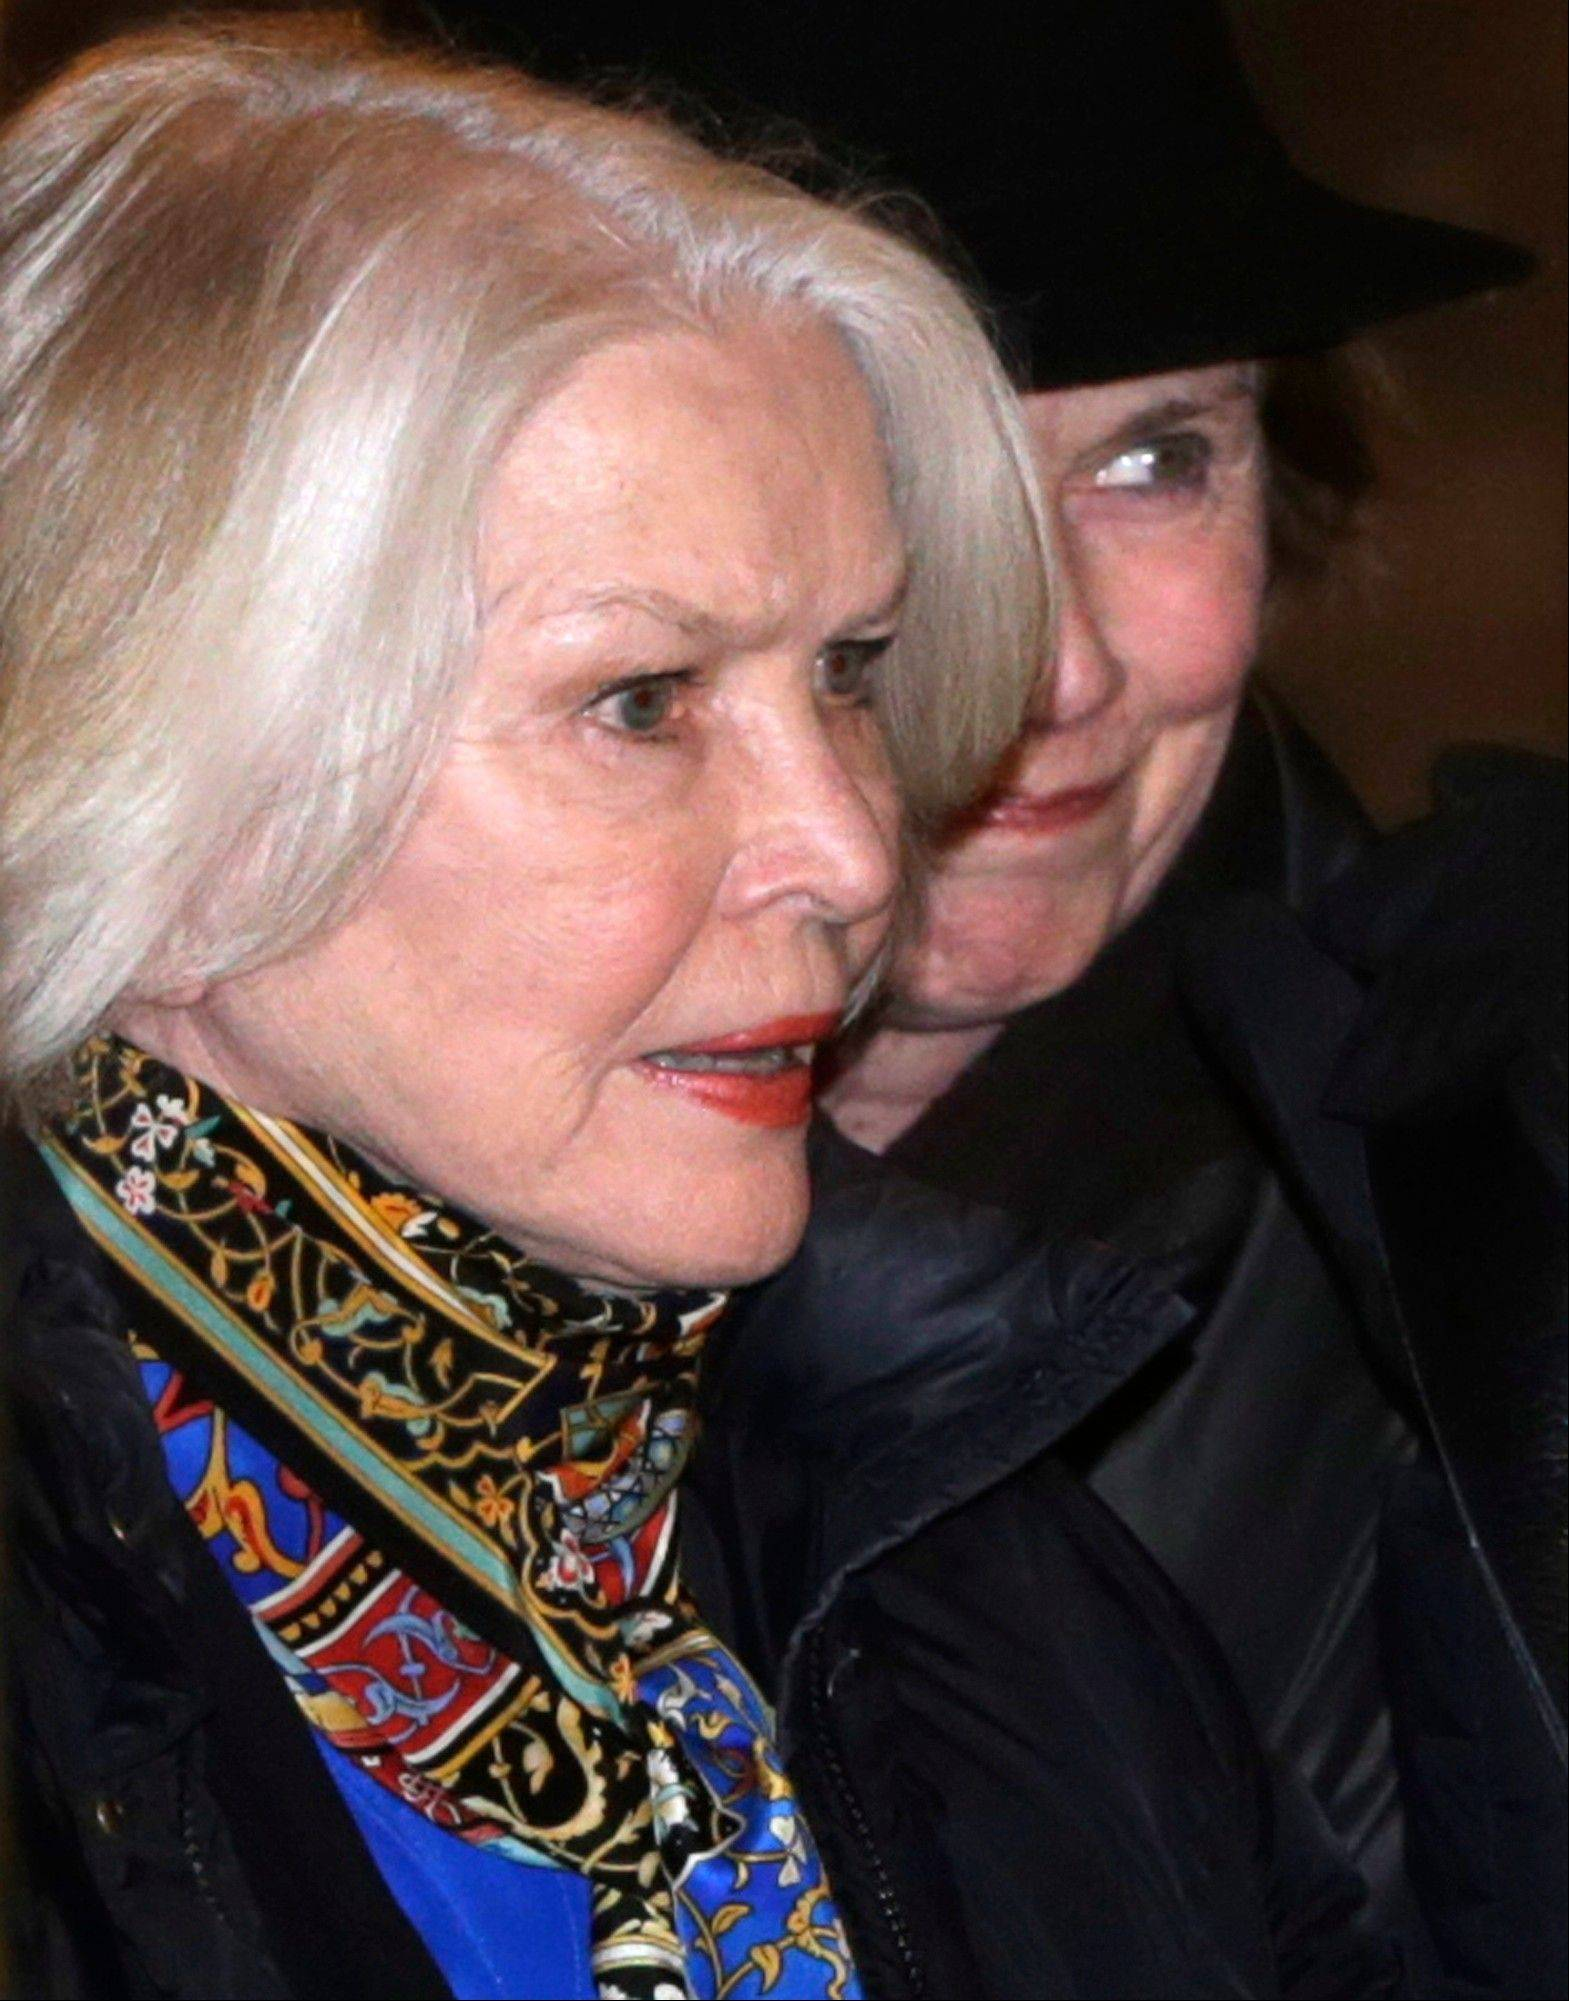 Actress Ellen Burstyn arrives at a wake for actor Philip Seymour Hoffman at the Frank E. Campbell Funeral Home on Manhattan's Upper East Side Thursday, Feb. 6, 2014, in New York.